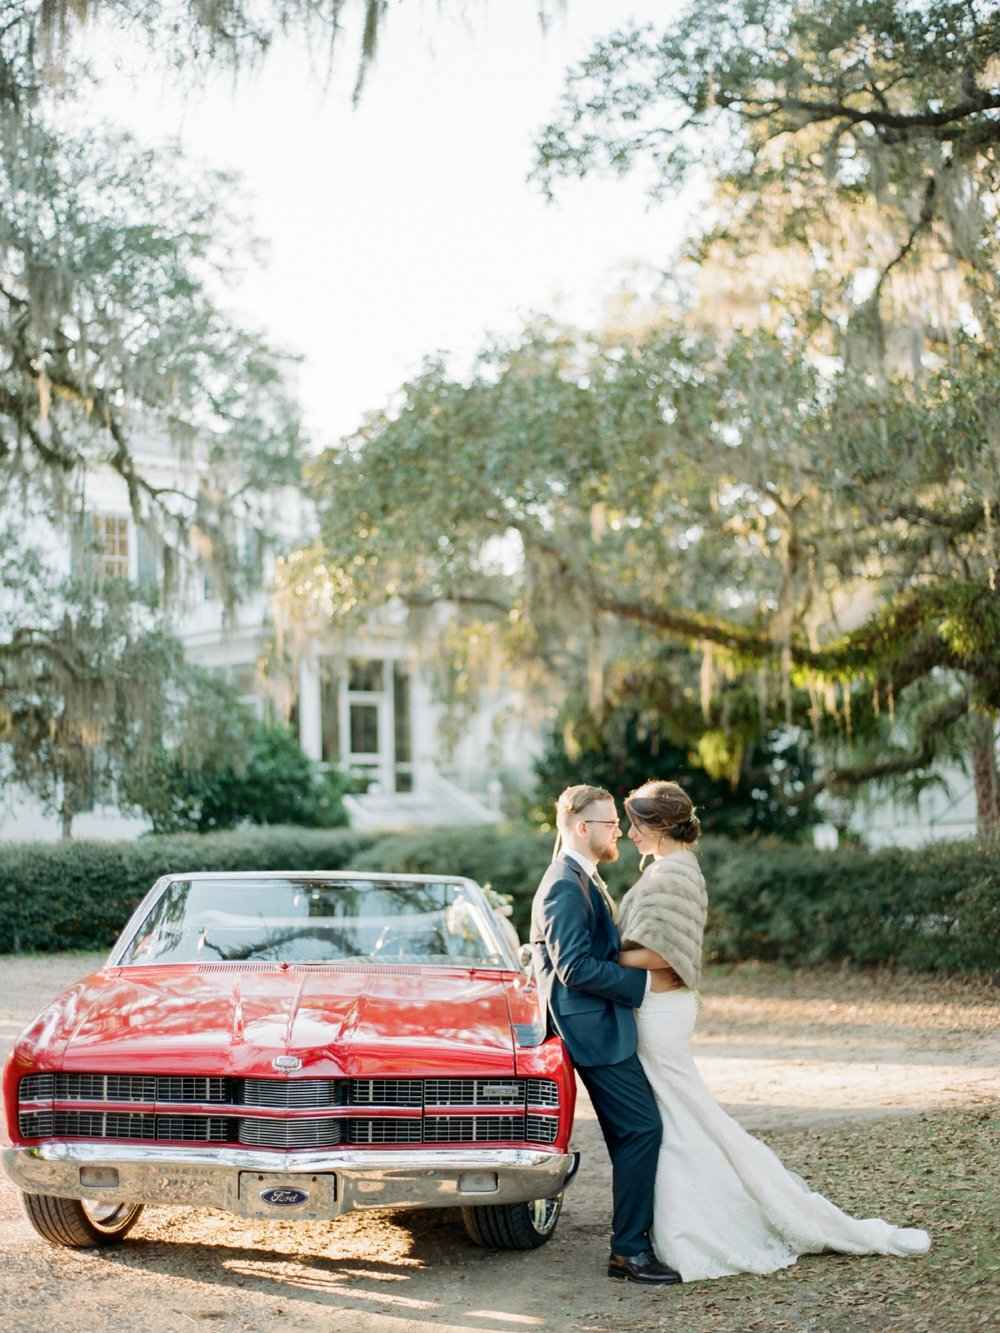 goodwood museum tallahassee wedding photographer - tallahassee florida - shannon griffin_0021.jpg